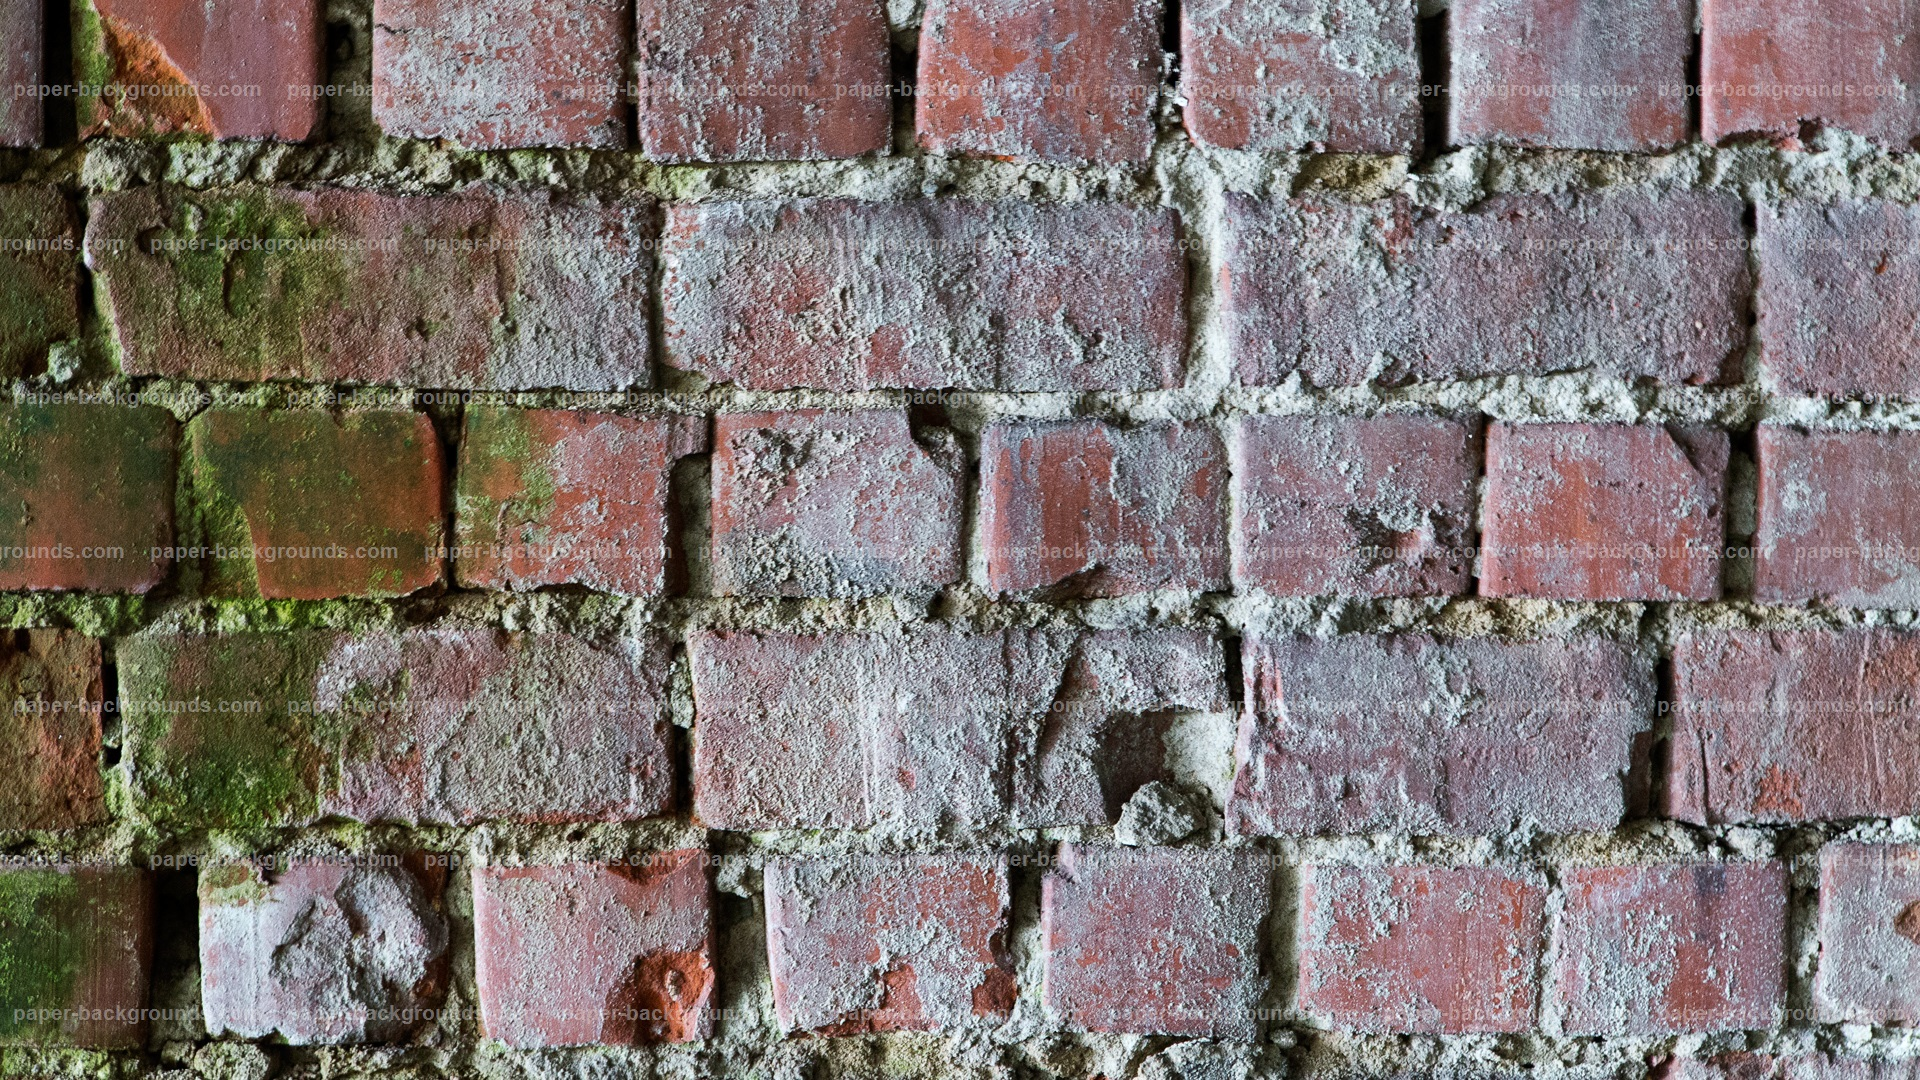 Grunge Brick Wall Texture HD